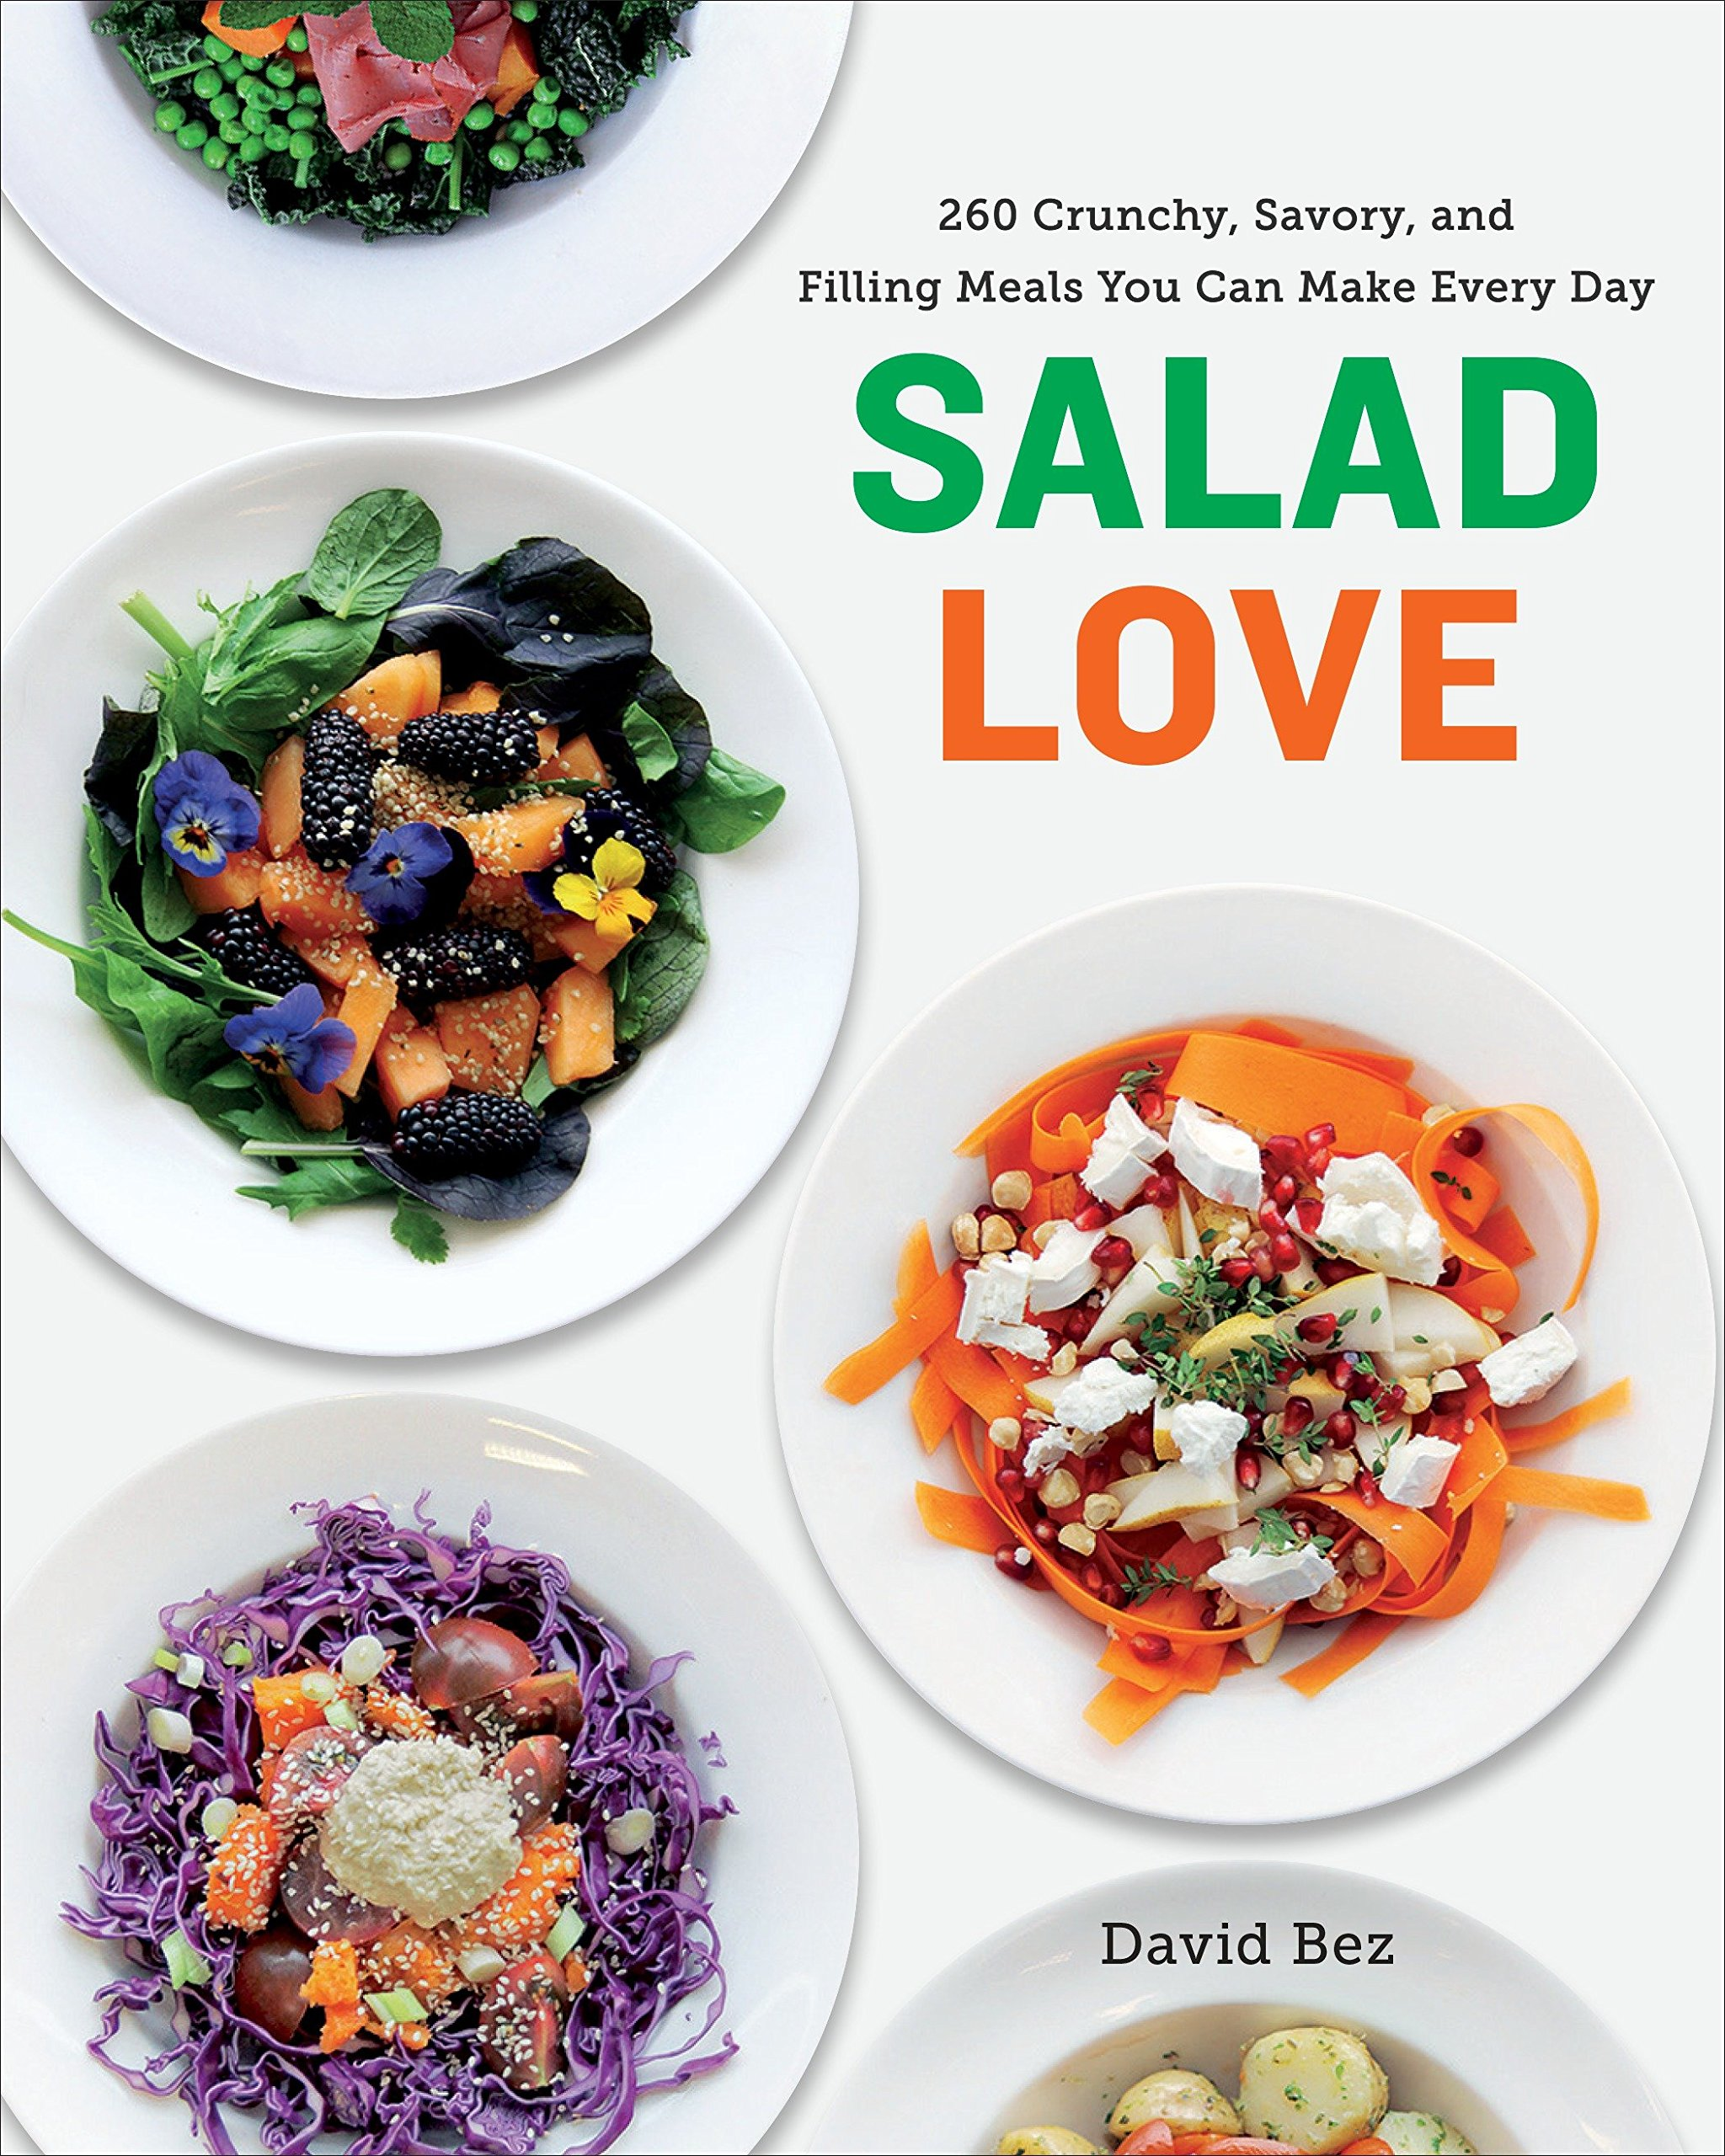 Salad Love: Crunchy, Savory, and Filling Meals You Can Make Every Day